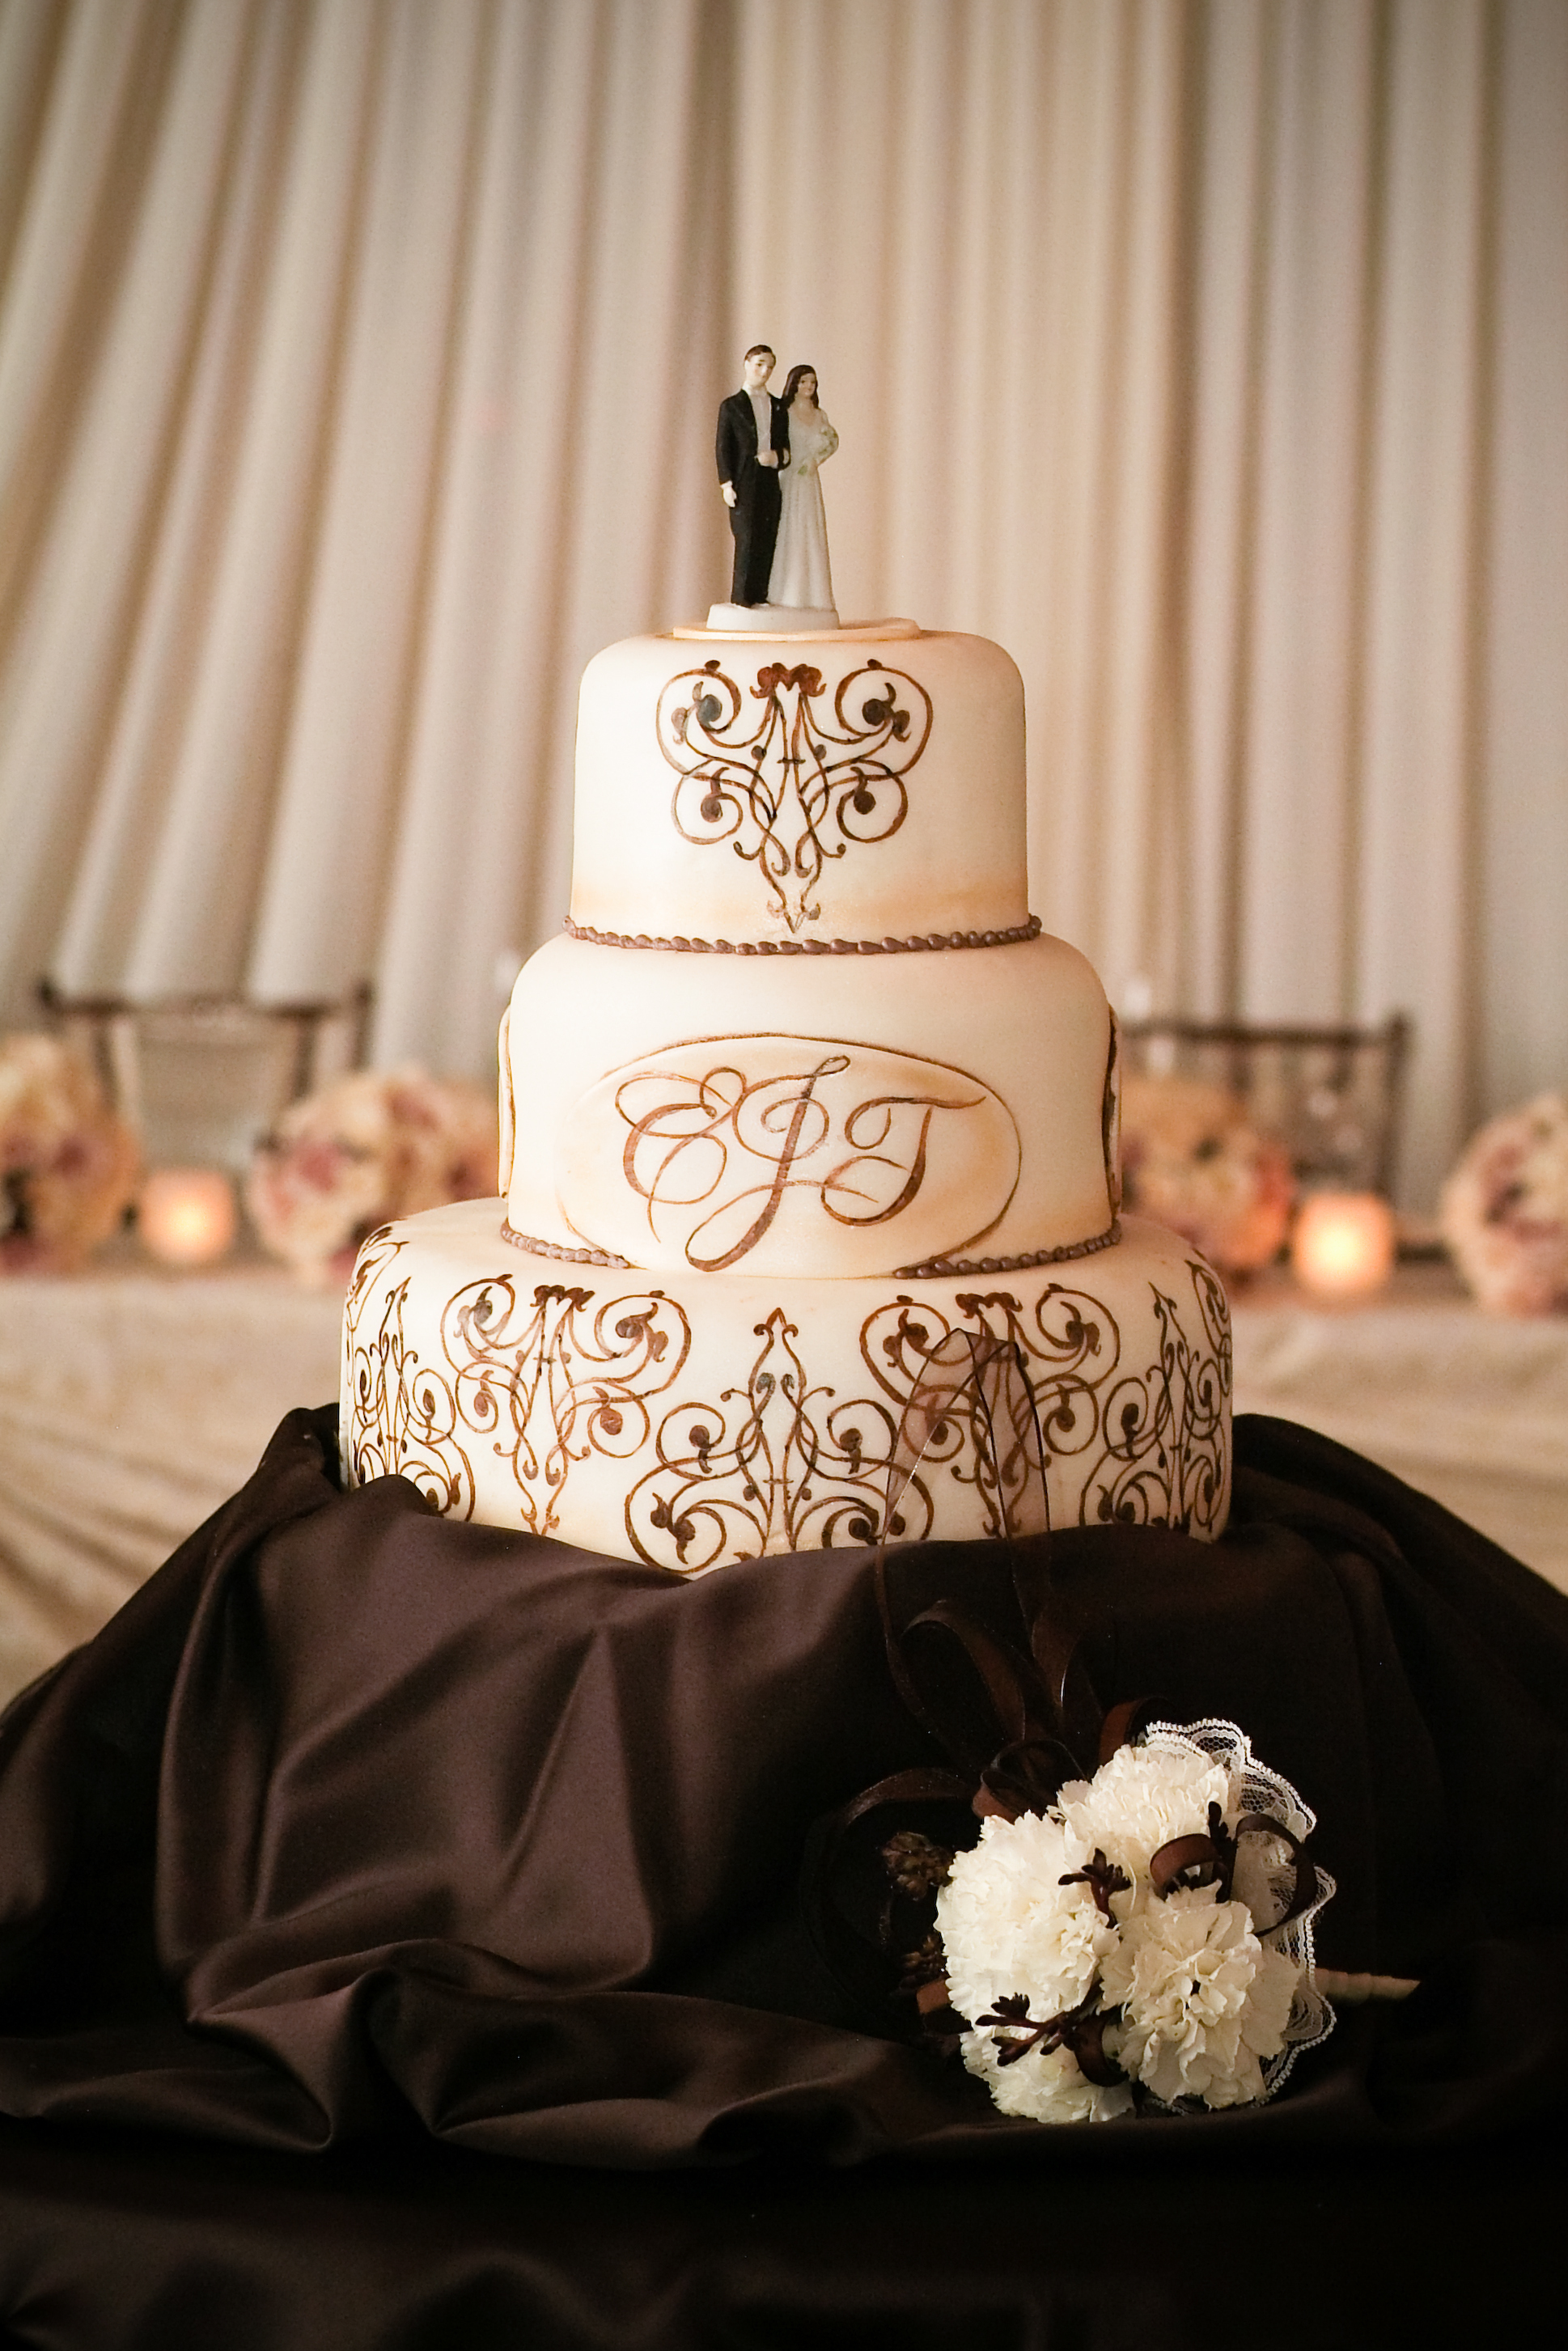 Reception, Flowers & Decor, Cakes, ivory, brown, cake, Vintage, Vintage Wedding Cakes, Wedding, Table, Chocolate, Champagne, Style, Antique